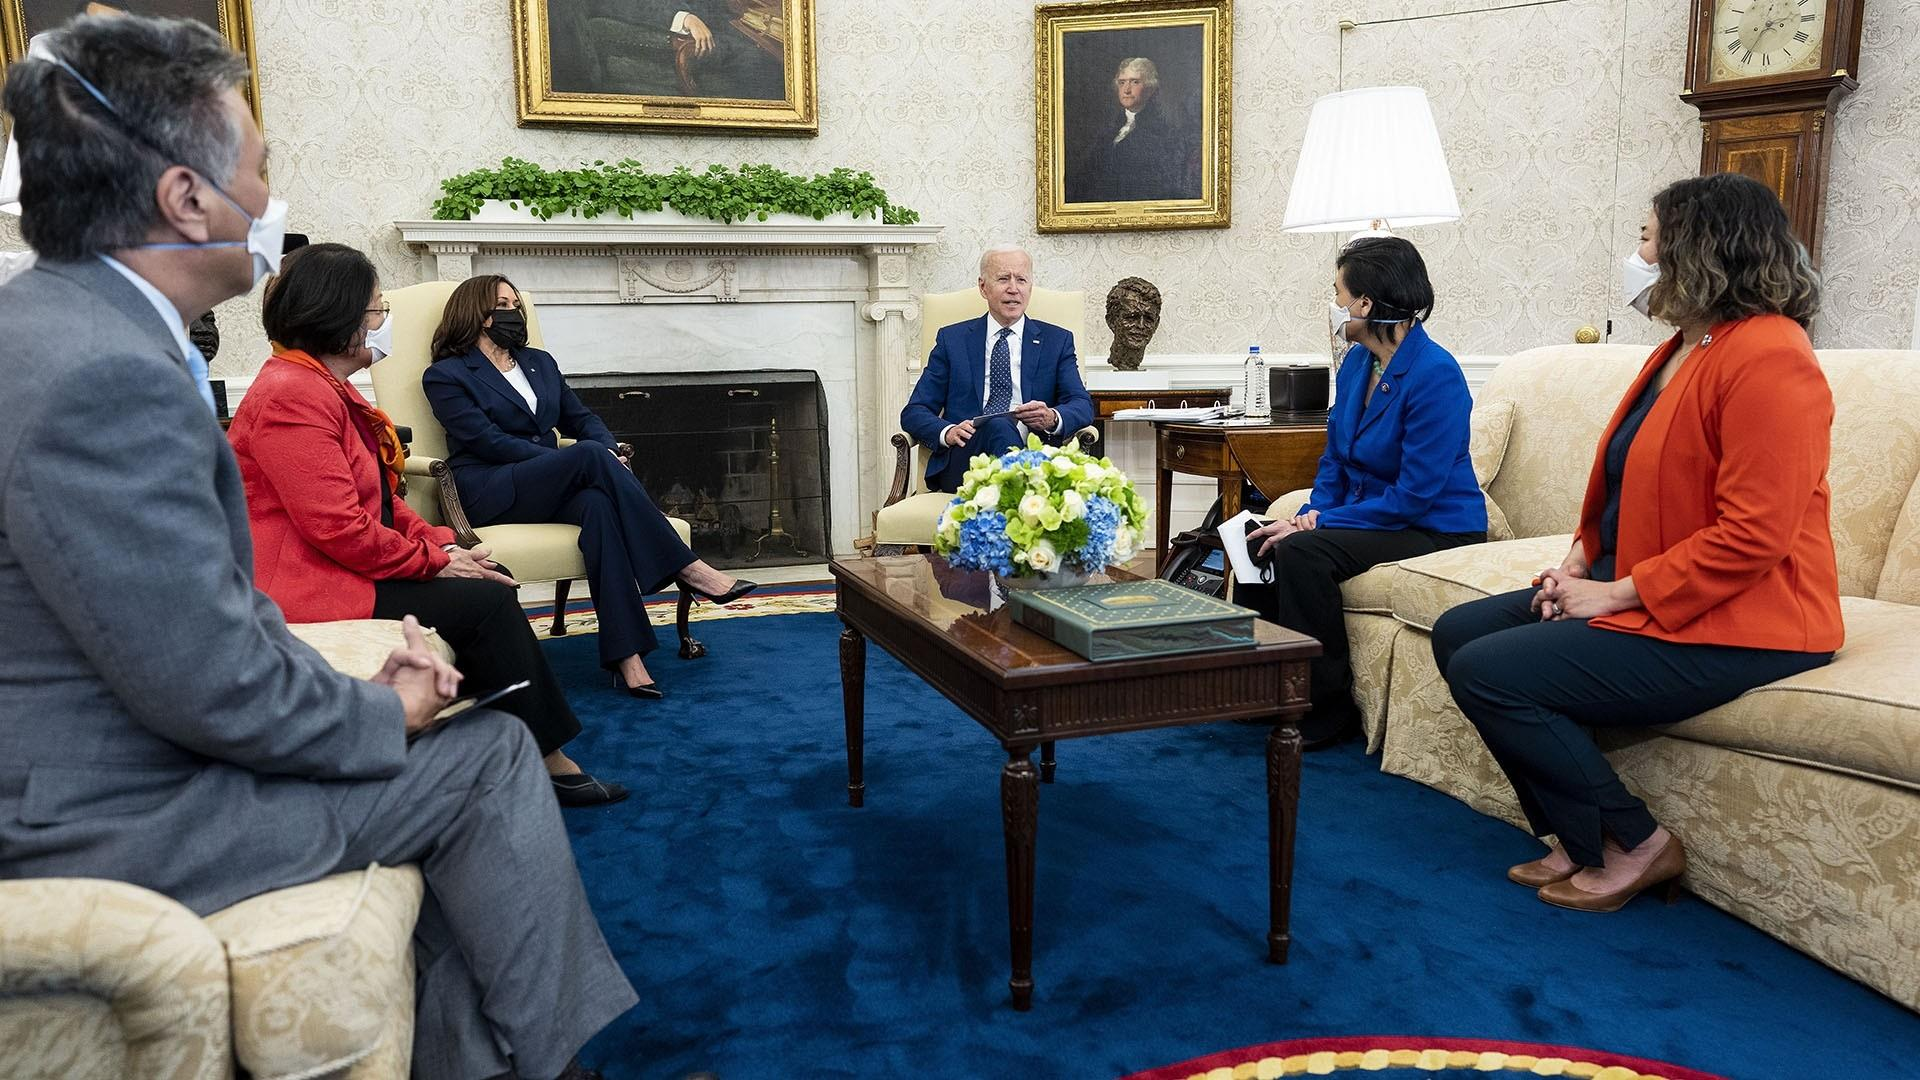 news.yahoo.com: Biden holds meeting with Congressional Asian Pacific American Caucus leadership